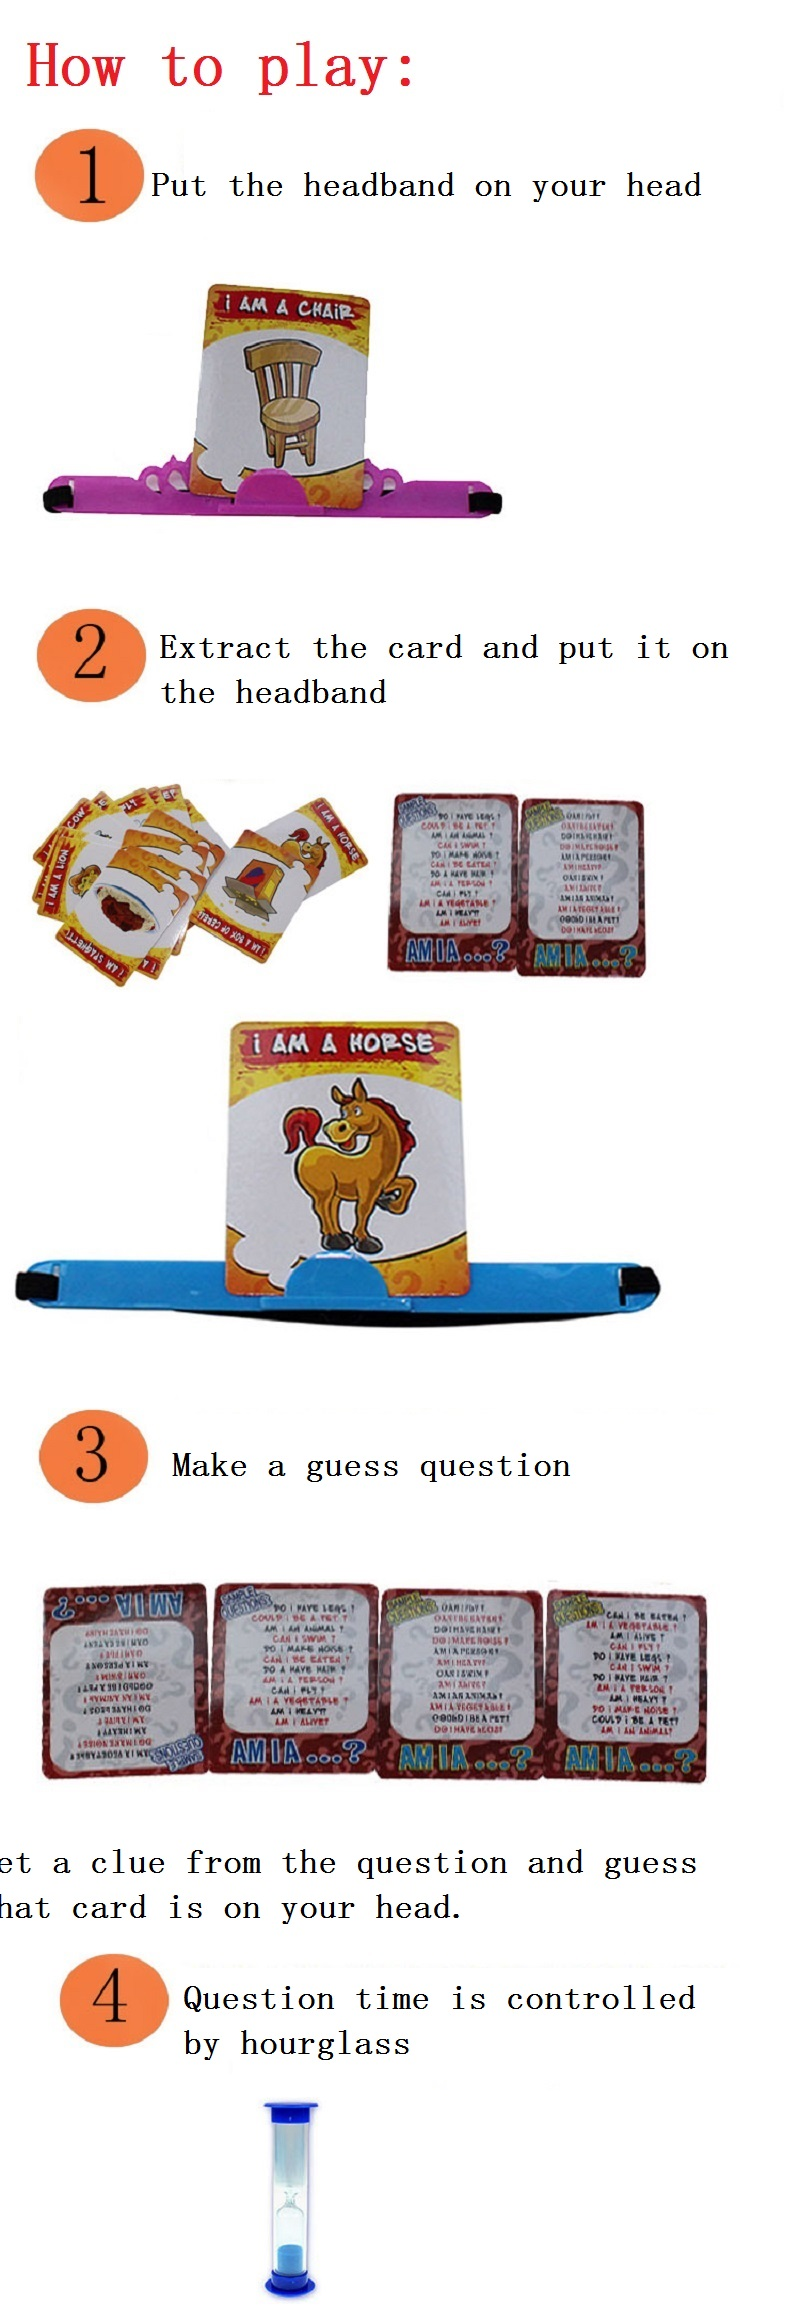 Kids Funny Toys The Quick Question of What am I Cards Board Game Funny Gadgets Novelty Toys For Children (1)